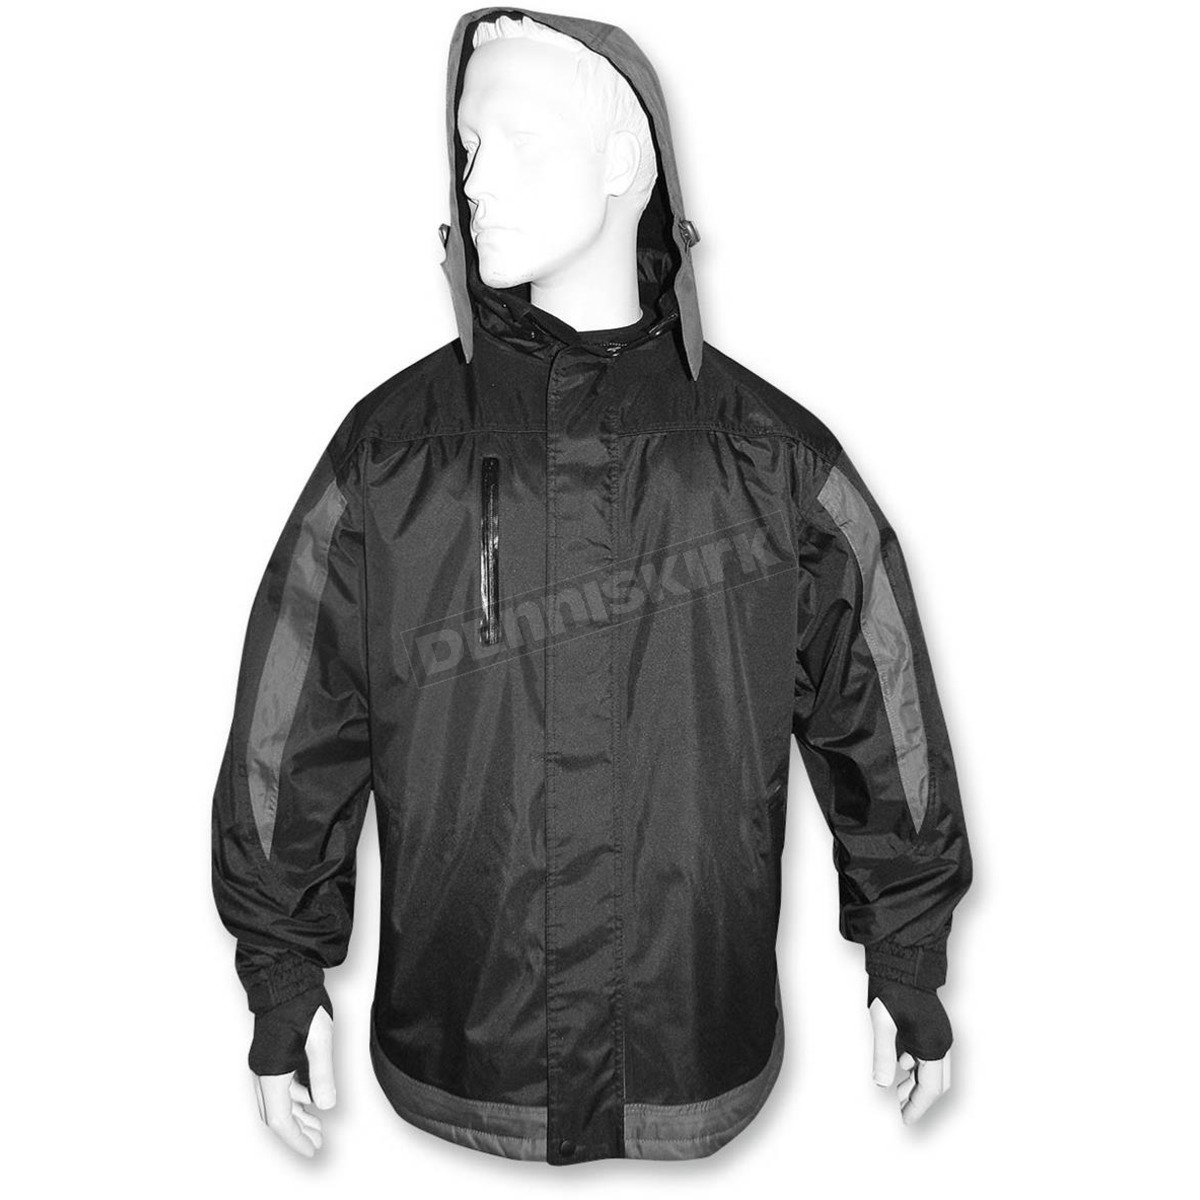 R.U. Outside Black/Gray Vortex Wind/Waterproof Jacket - JCKT-LG ...